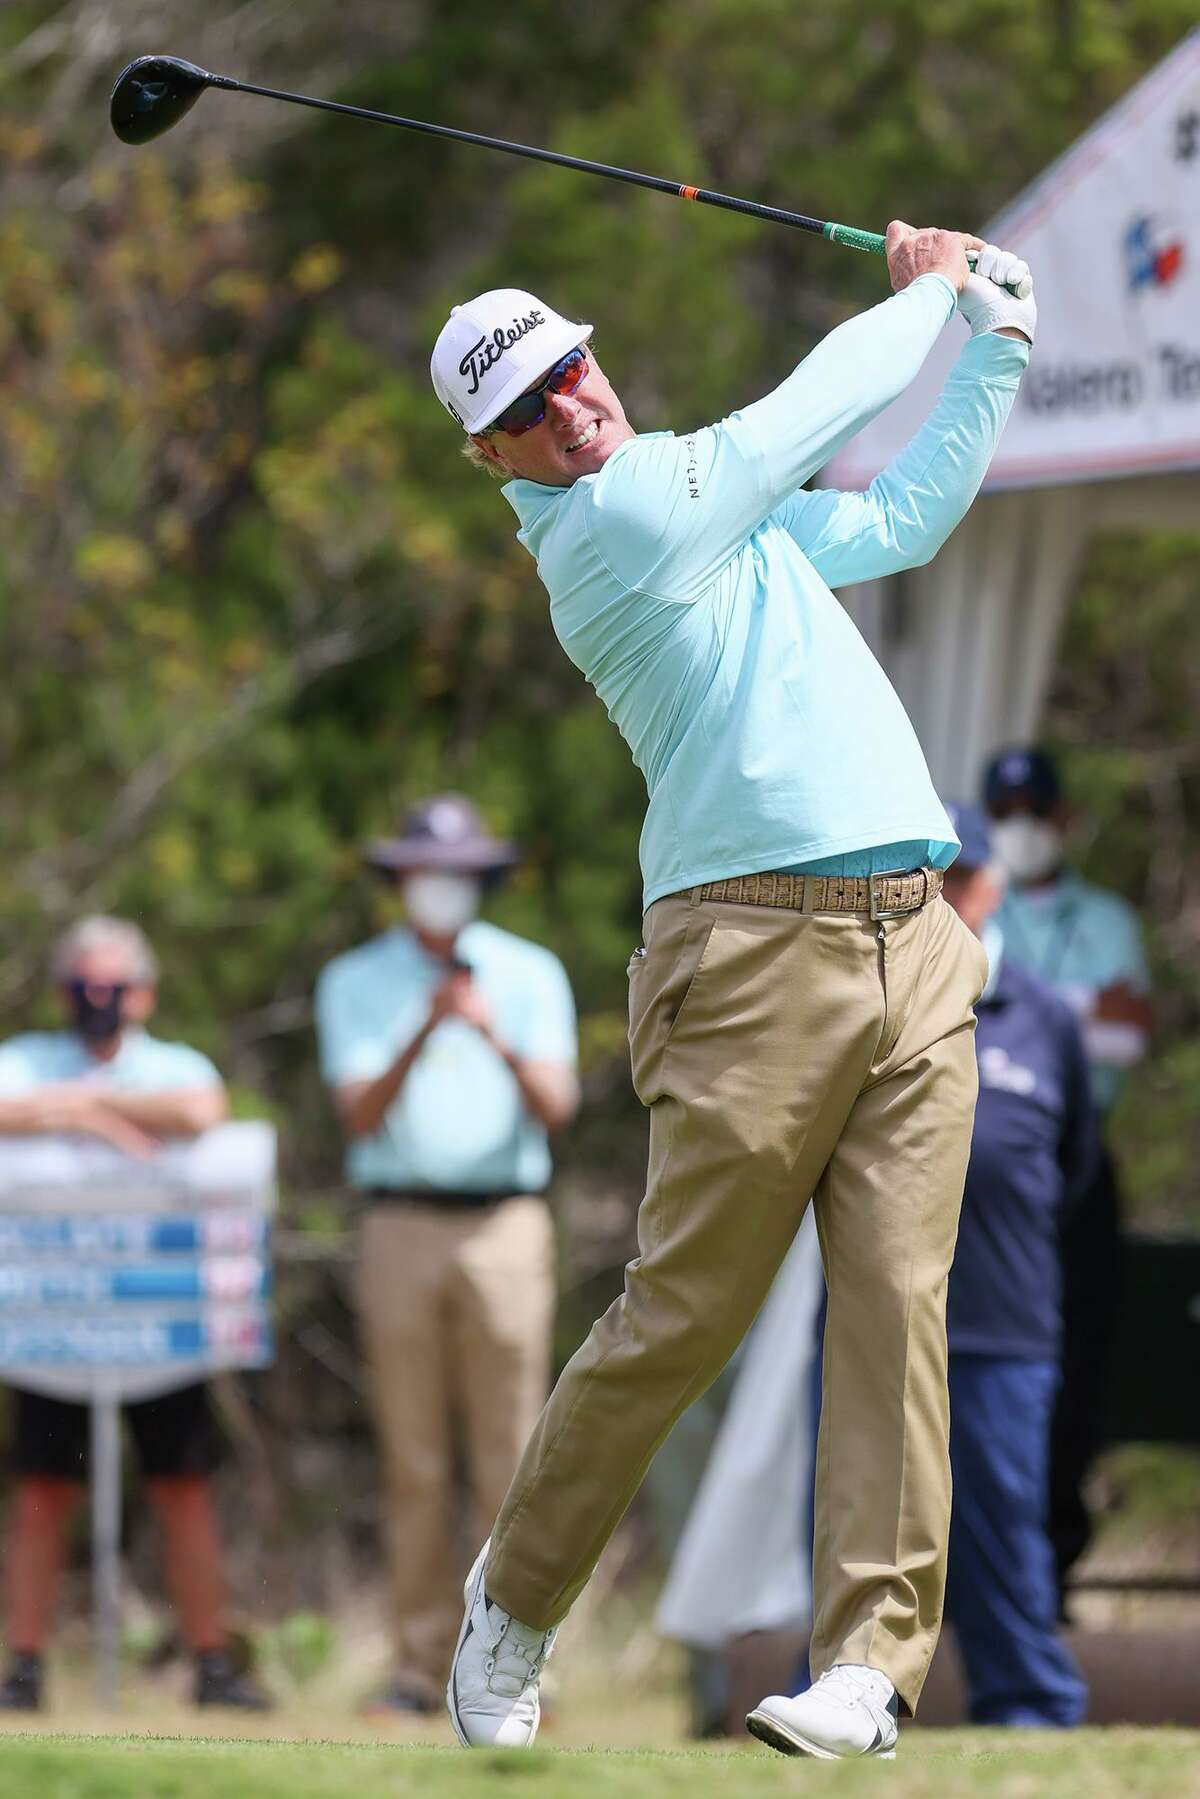 Charley Hoffman tees off on No. 1 during the final round of the Valero Texas Open at the TPC San Antonio - AT&T Oaks Course on Sunday, April 4, 2021.